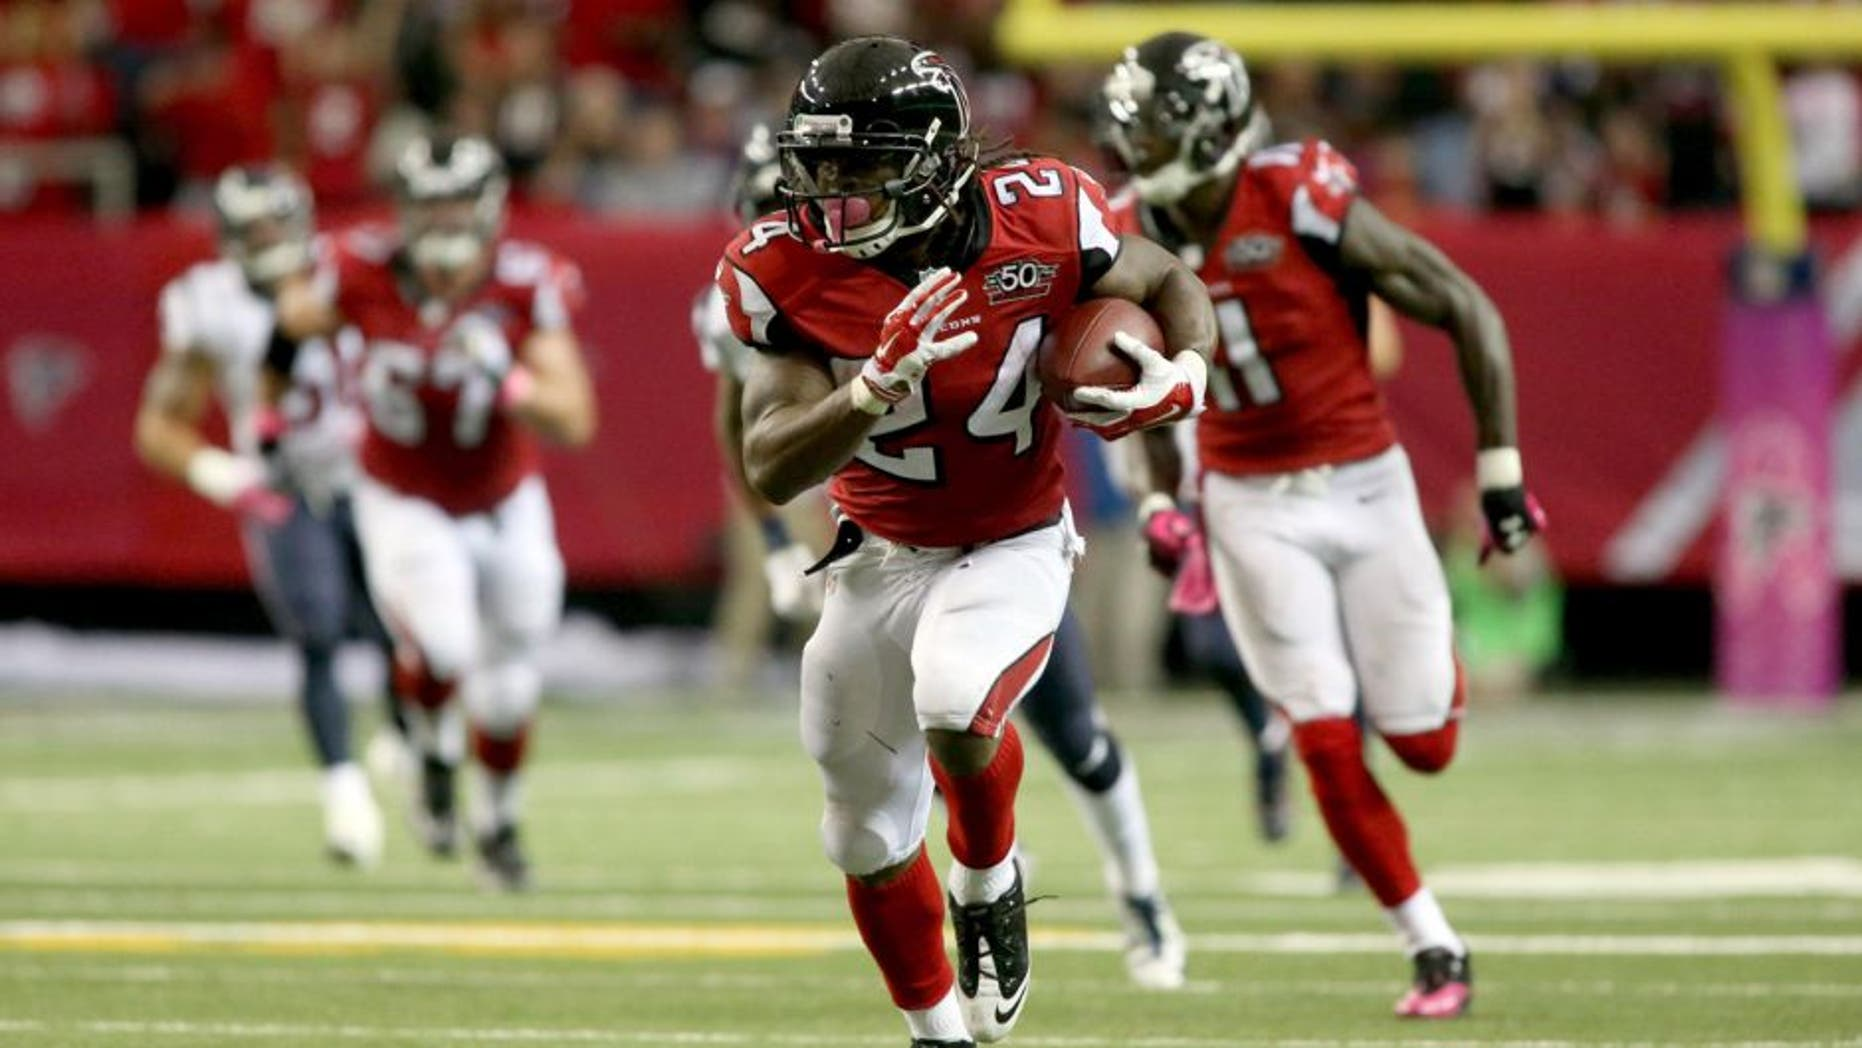 Oct 4, 2015; Atlanta, GA, USA; Atlanta Falcons running back Devonta Freeman (24) runs after a catch in the second quarter of their game against the Houston Texans at the Georgia Dome. The Falcons won 48-21. Mandatory Credit: Jason Getz-USA TODAY Sports